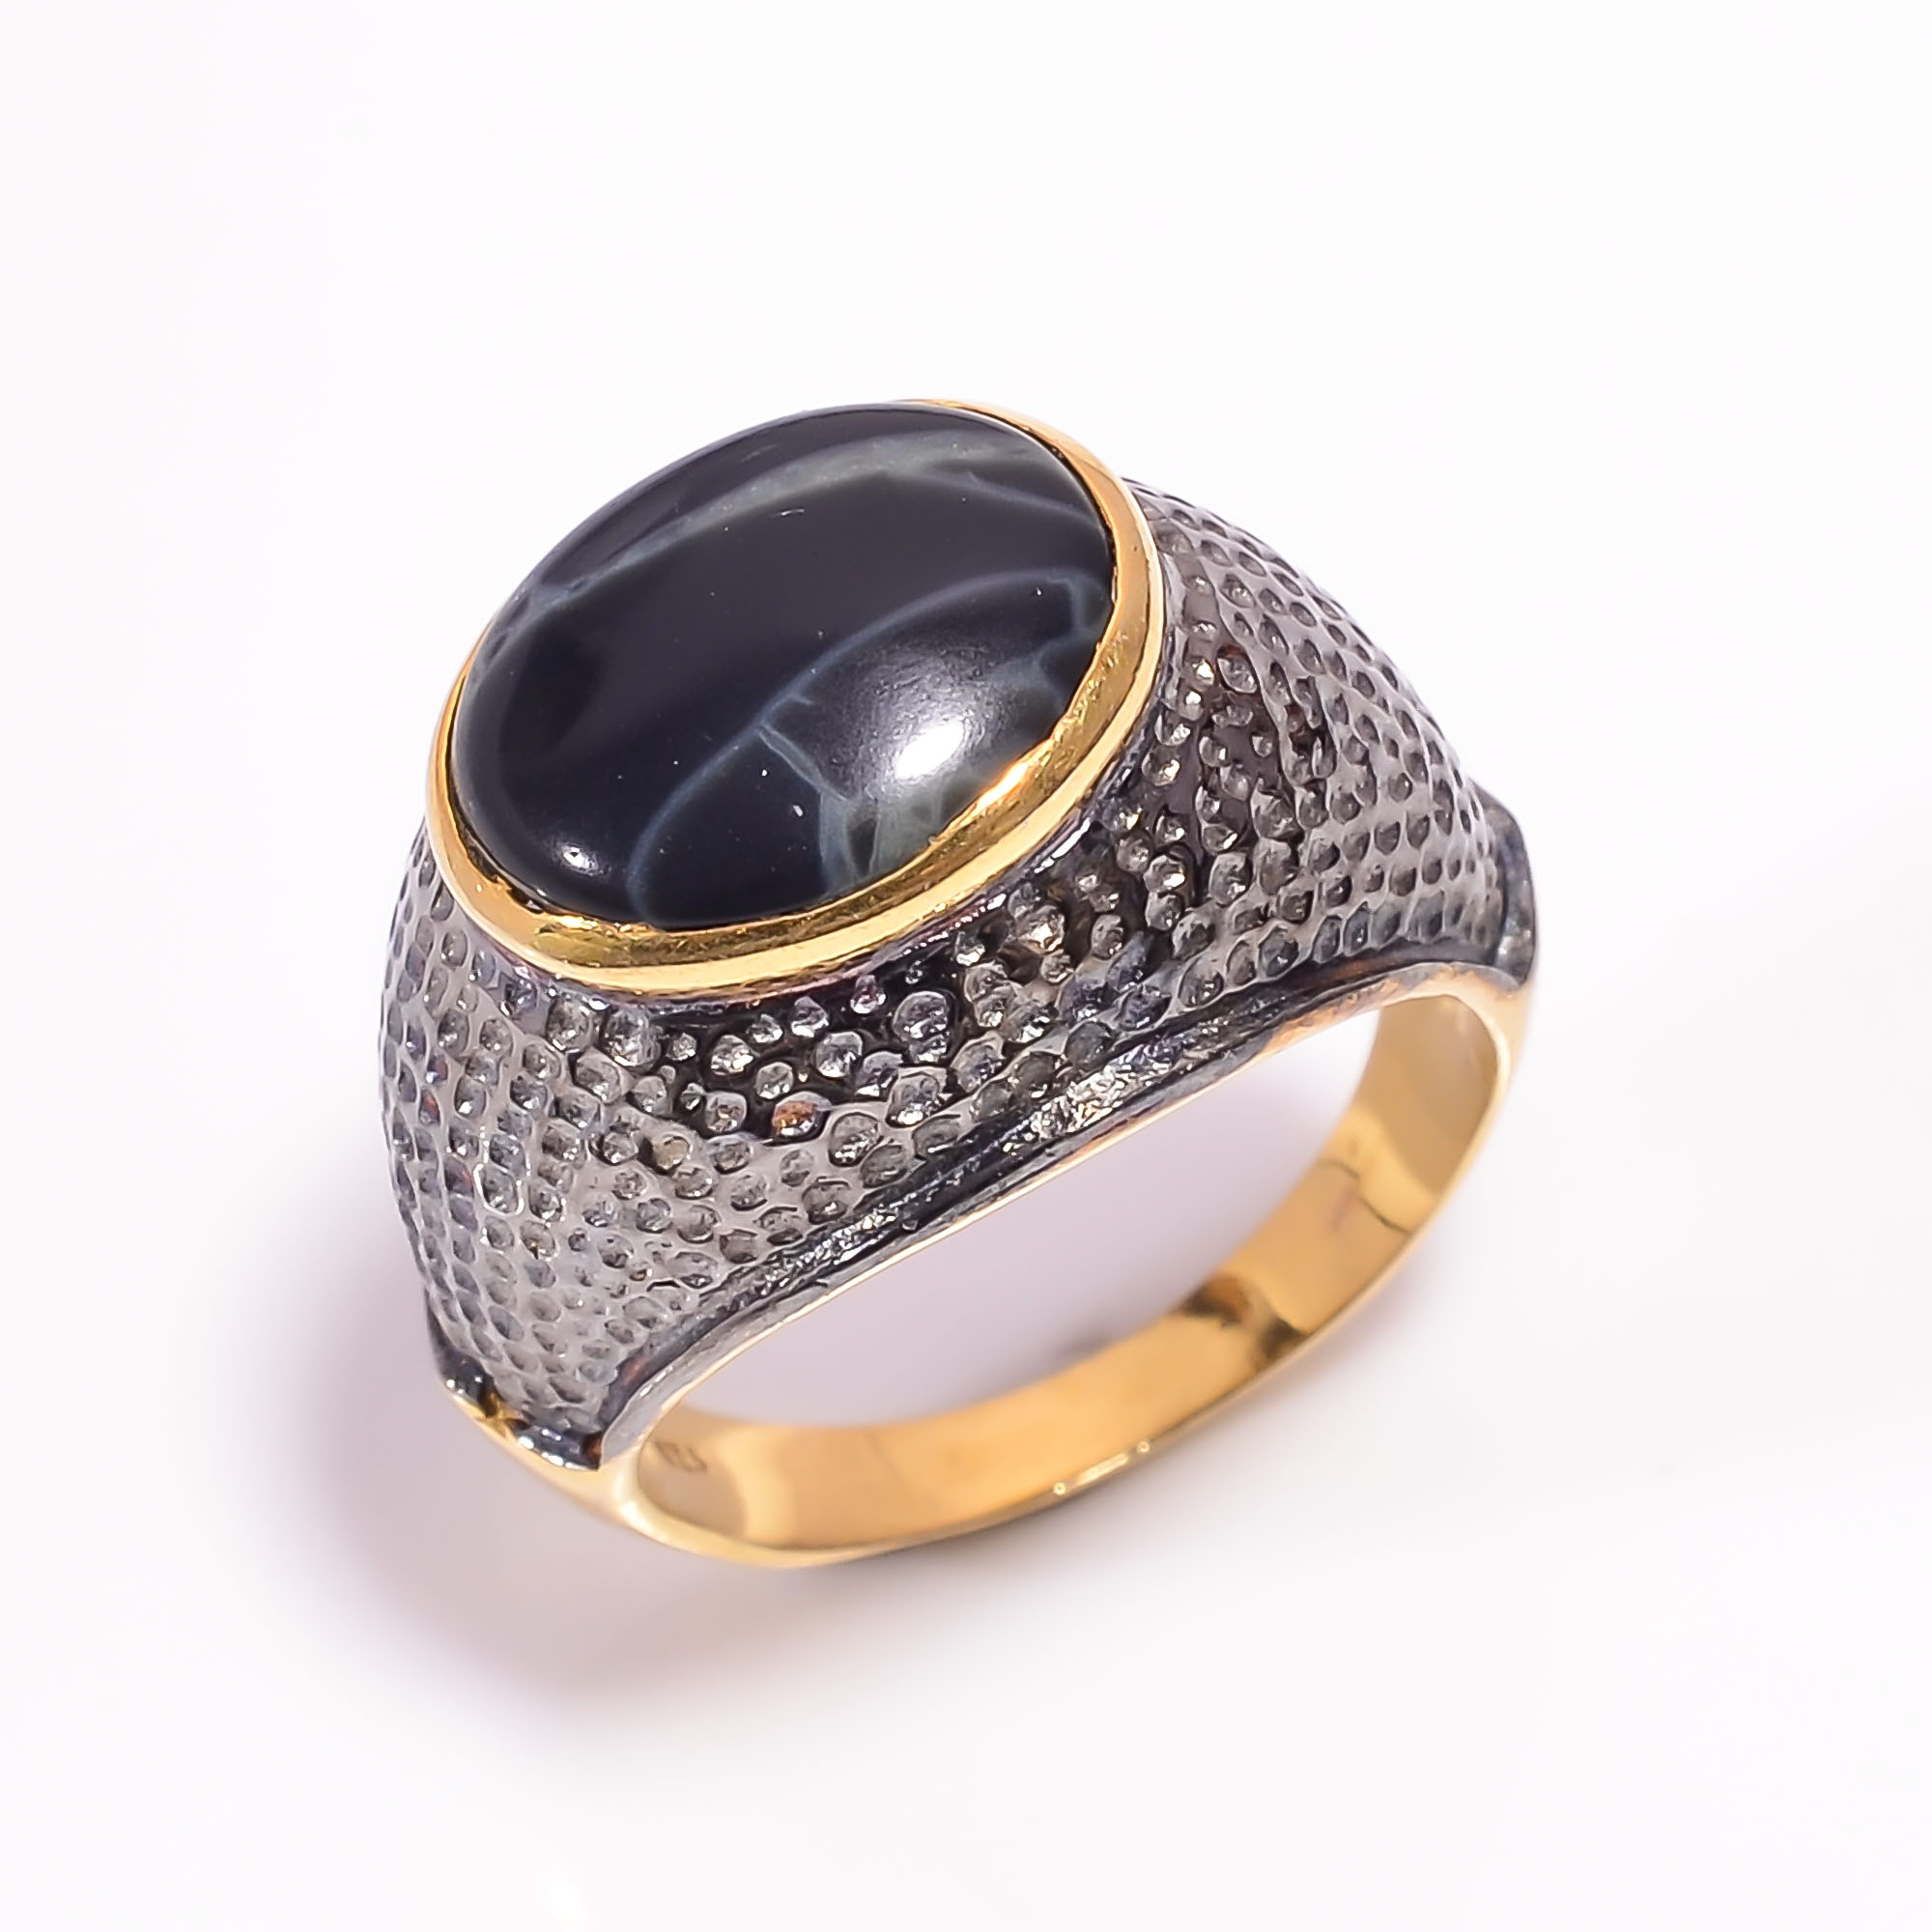 925 Sterling Silver Gold Plated & Black Rhodium Two Tone Spider Web Jasper Ring Size US 6.25